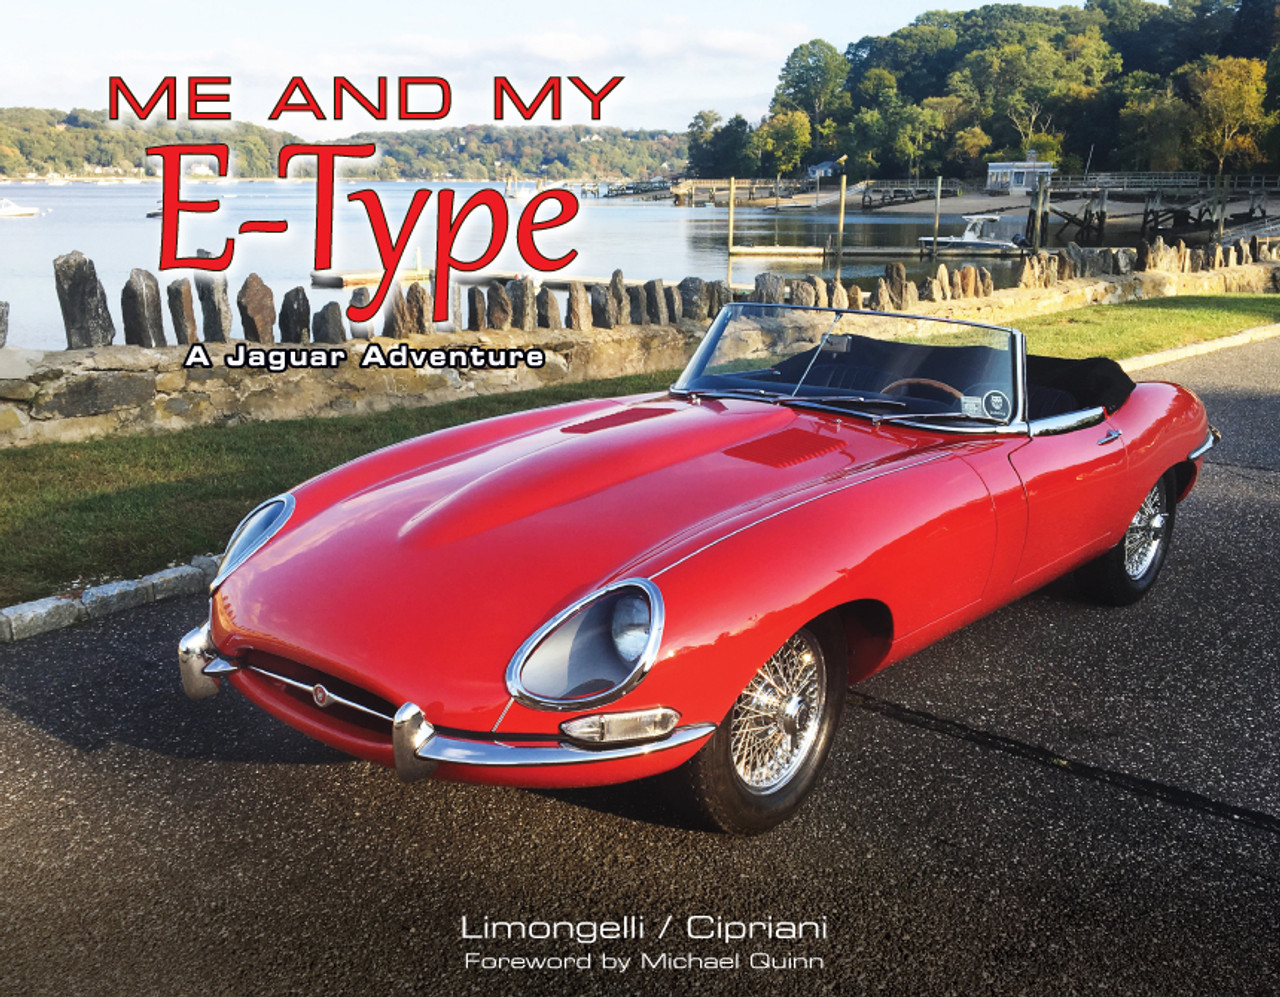 Me and My E-Type - A Jaguar Adventure